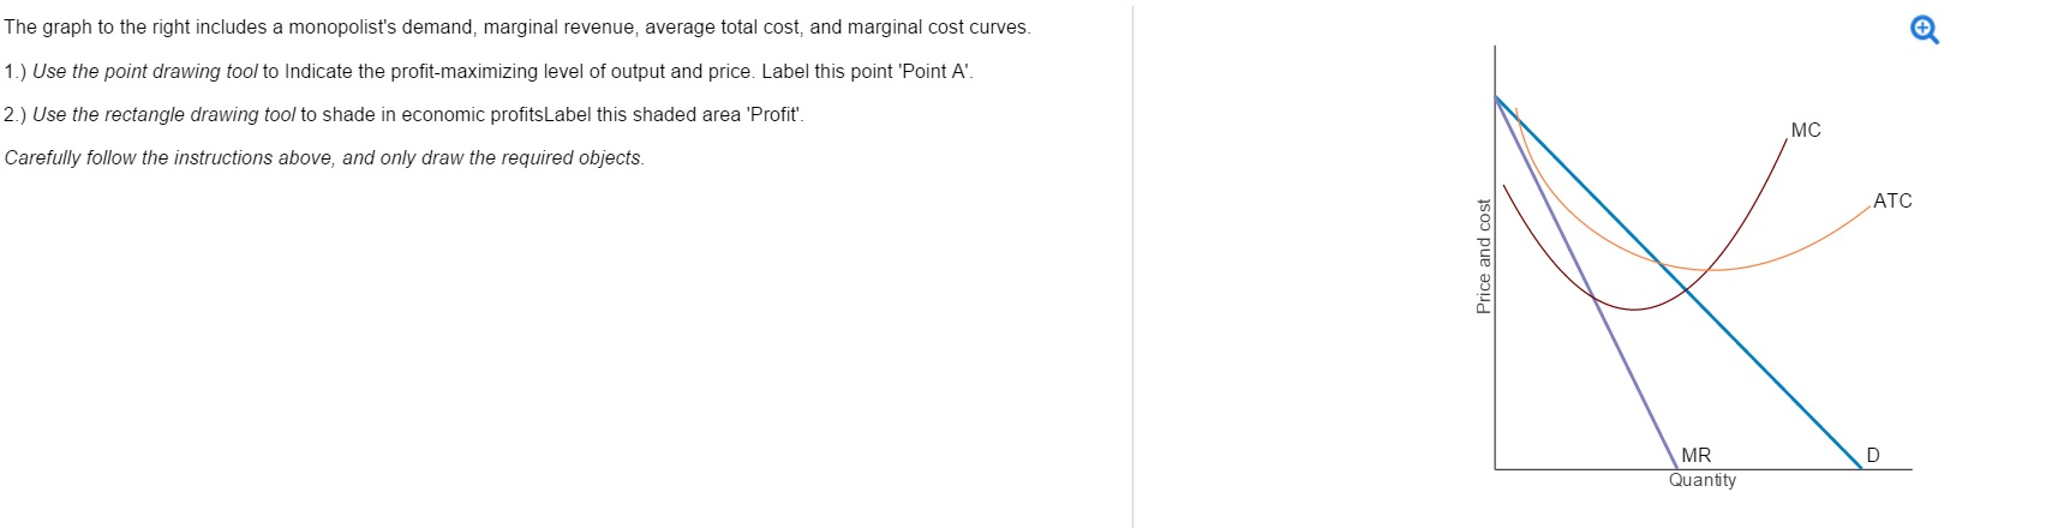 a study on opportunitytotal and marginal costs Definition: marginal cost is the additional cost incurred for the production of an additional unit of output what is the definition of marginal cost mc indicates the rate at which the total cost of a product changes as the production increases by one unit.